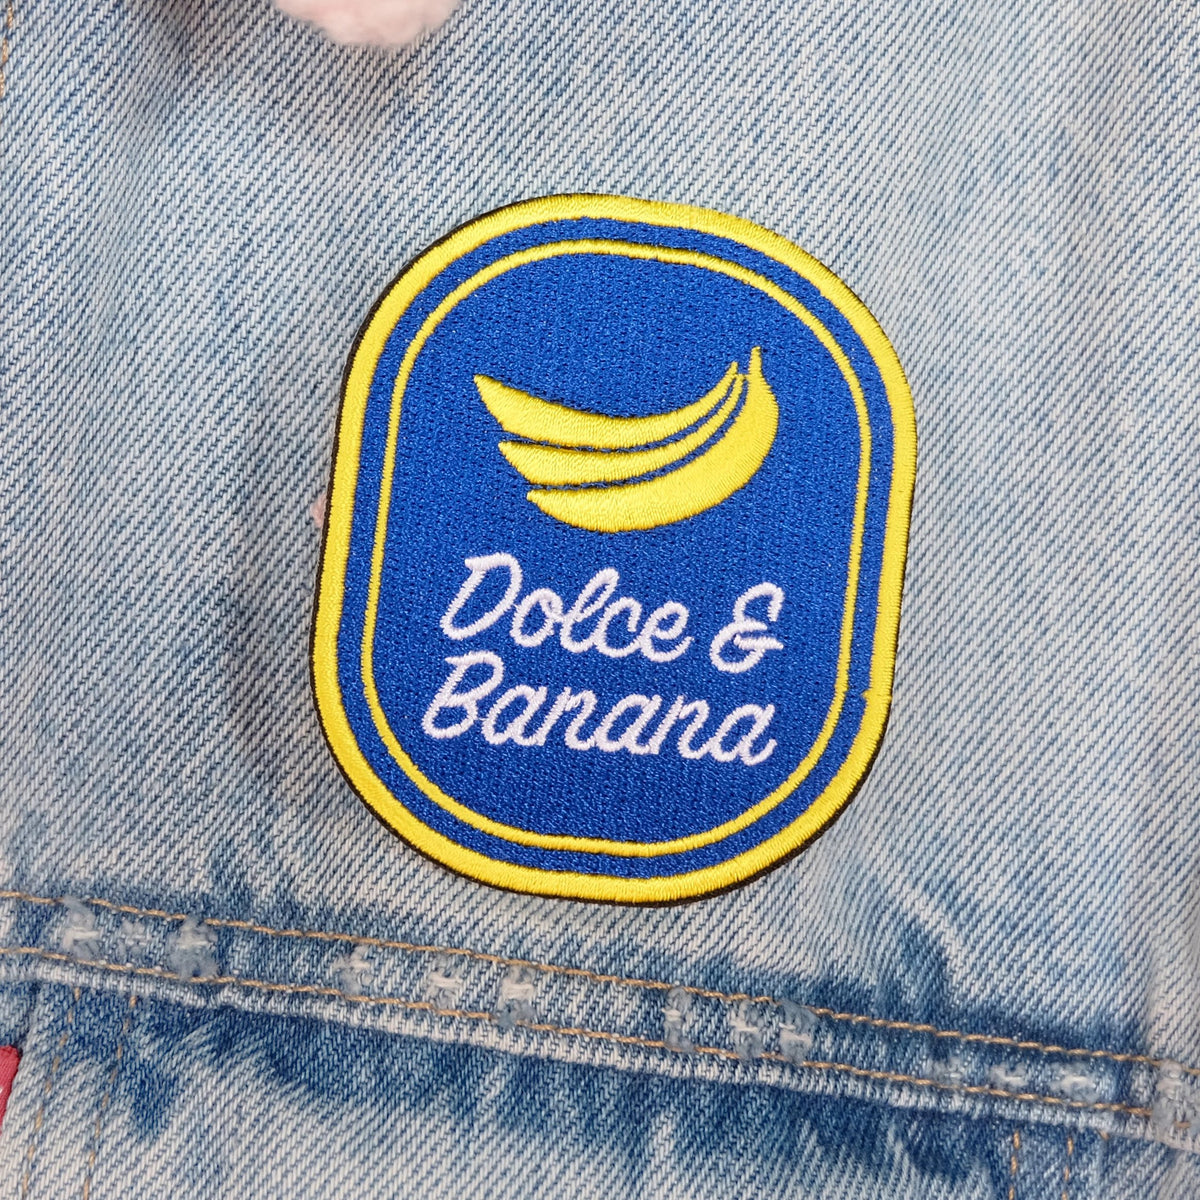 Dolce & Banana Patch - Daily Disco